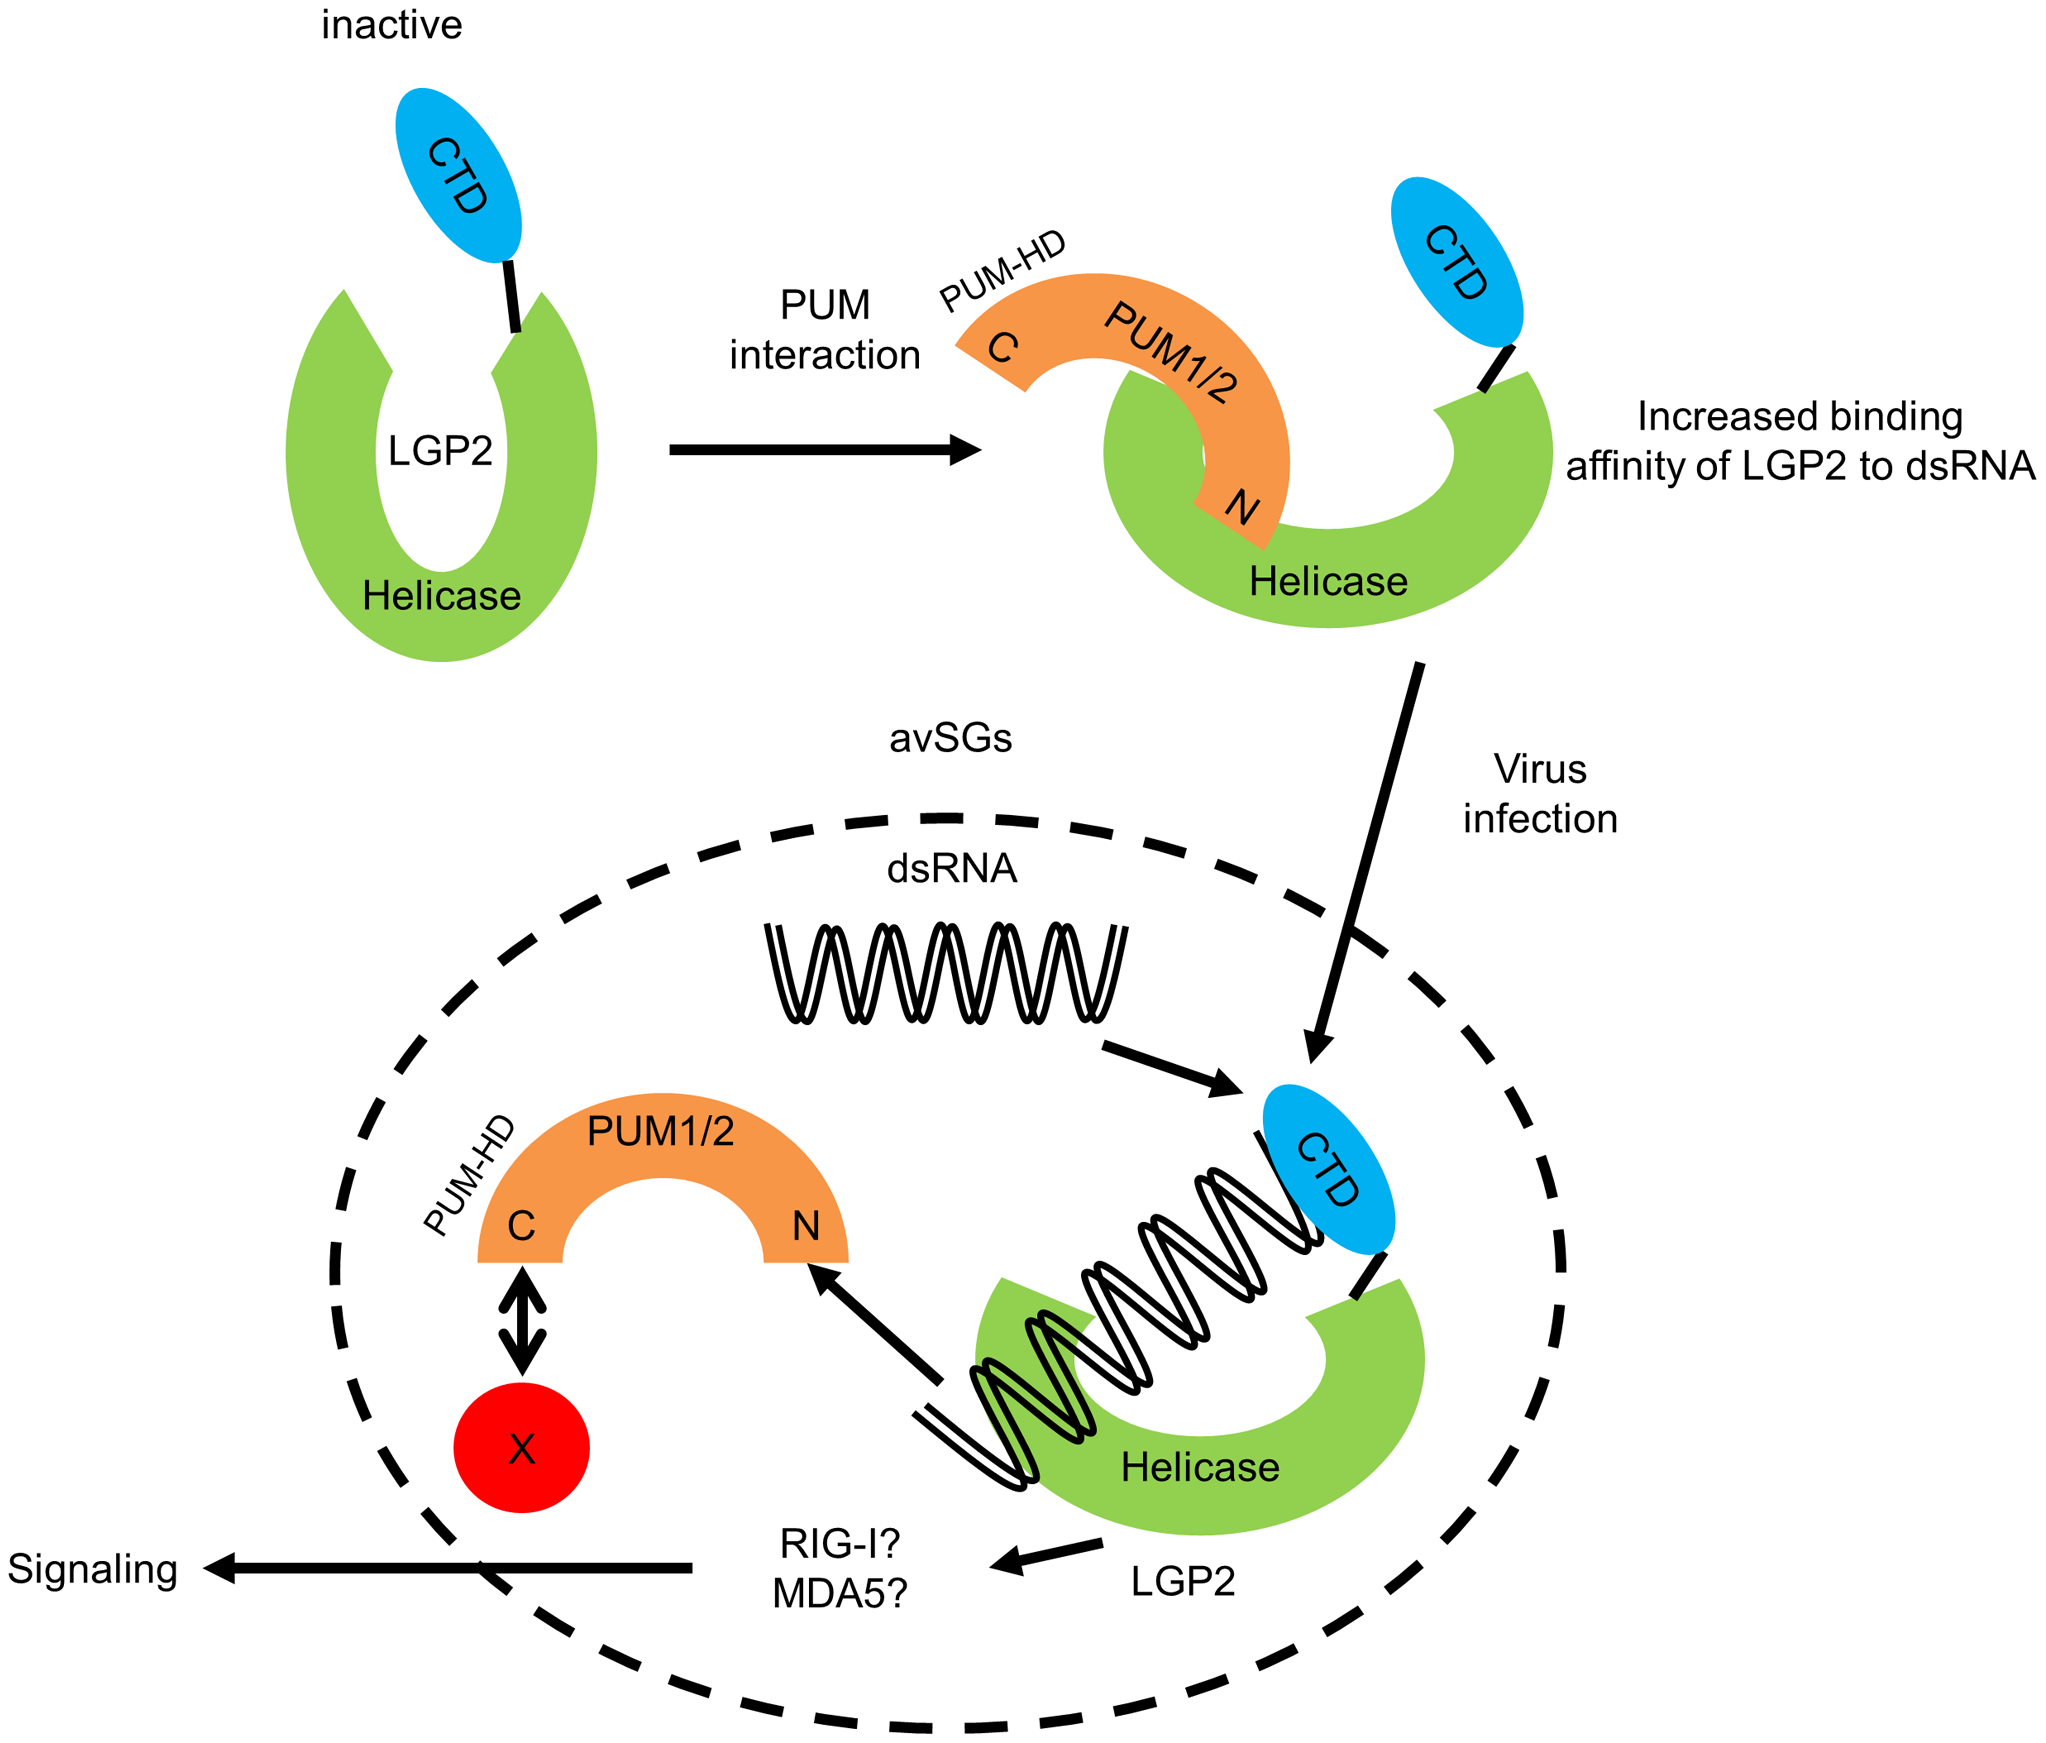 Hypothetical model for regulation of LGP2 by PUM1 and PUM2 in avSG.